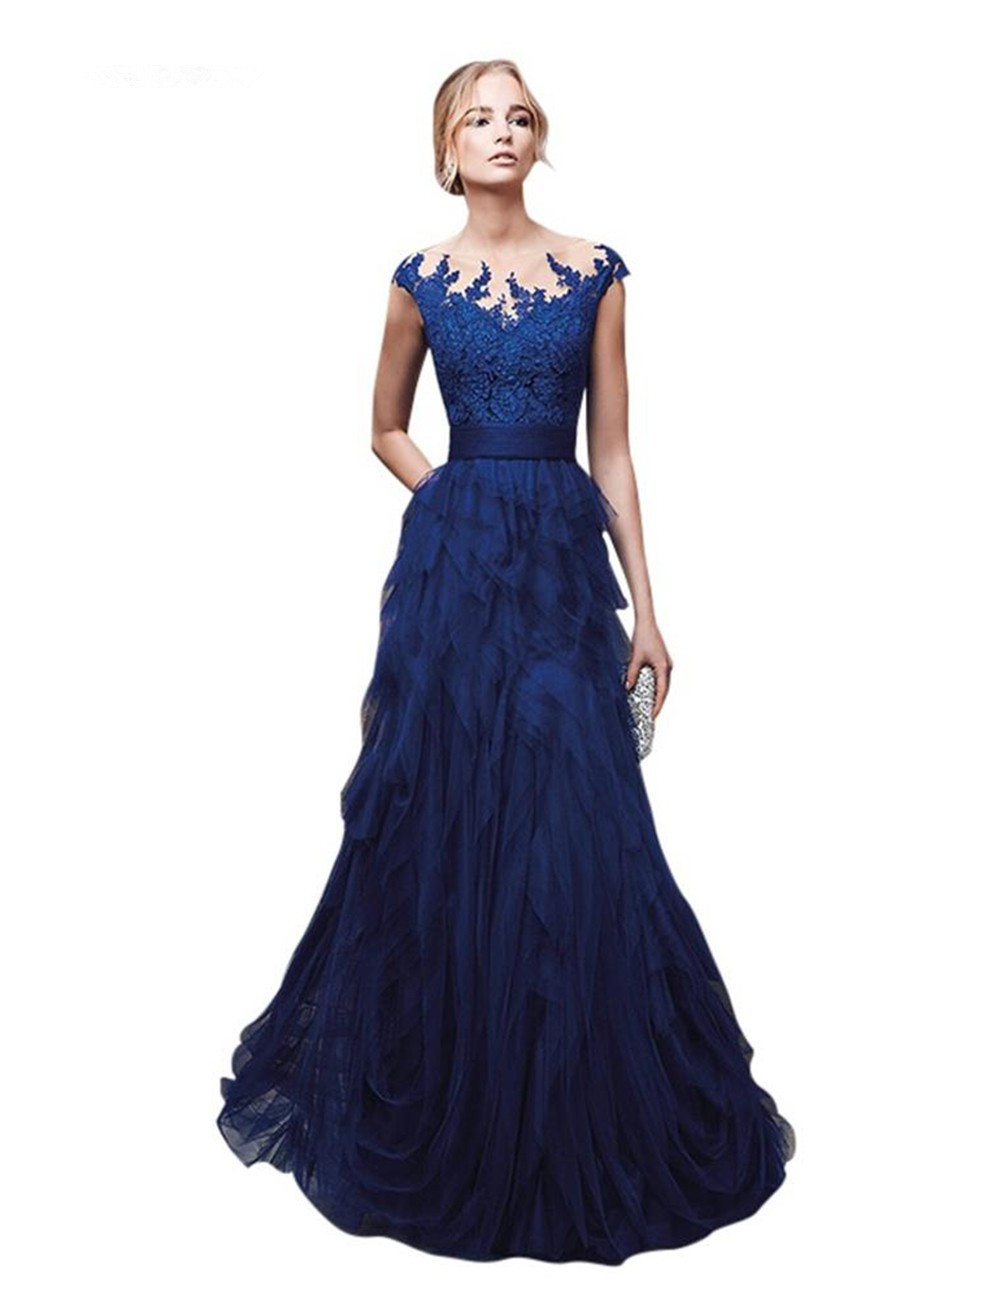 Sexy See Through Back Lace Cap Sleeve Royal Blue Prom Evening Gown 2018 Vestido De Festa Longo Long  Mother Of The Bride Dresses